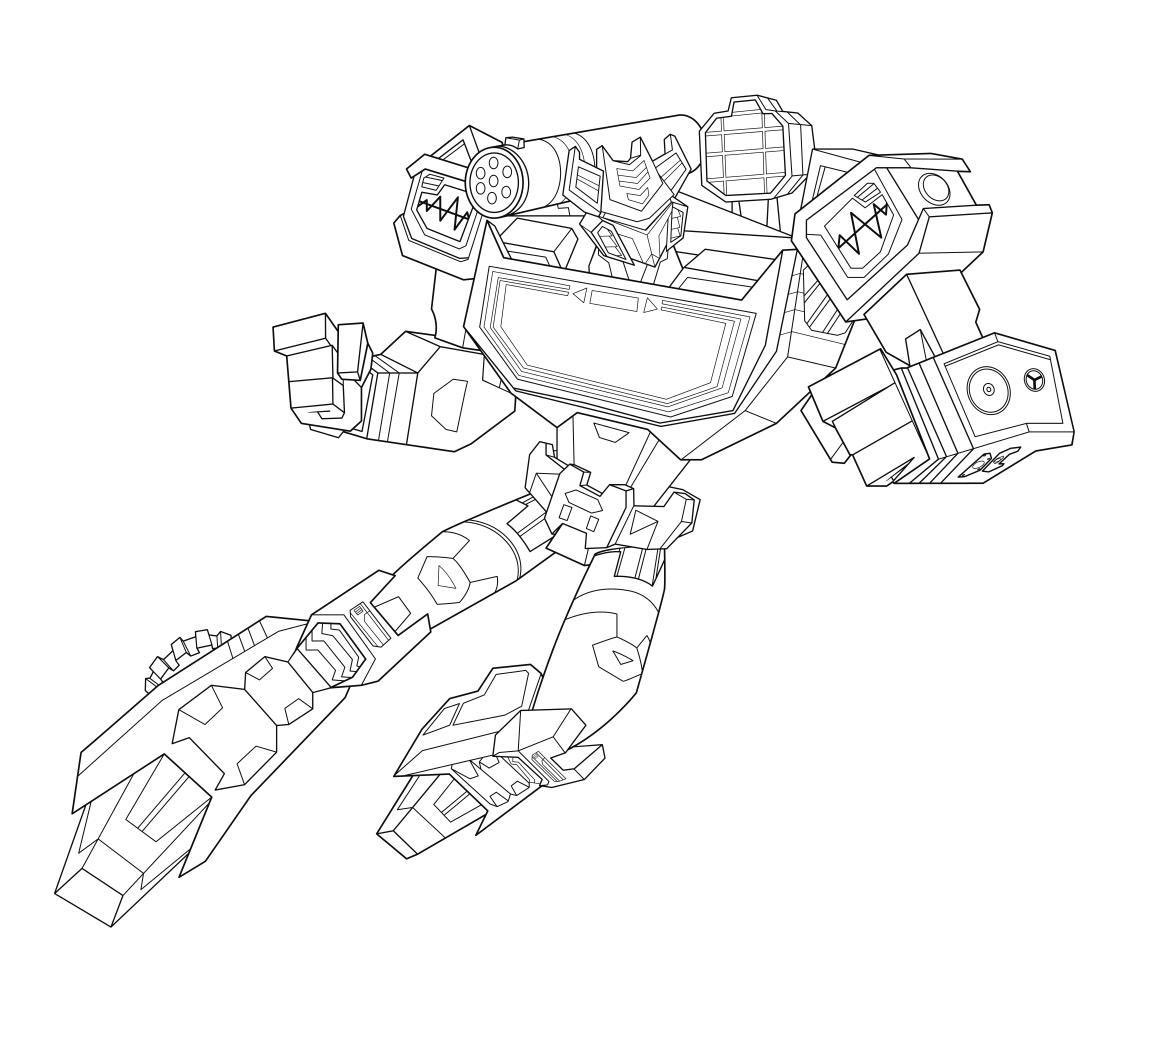 Official Takara Tomy Transformers Cyberverse Coloring ...